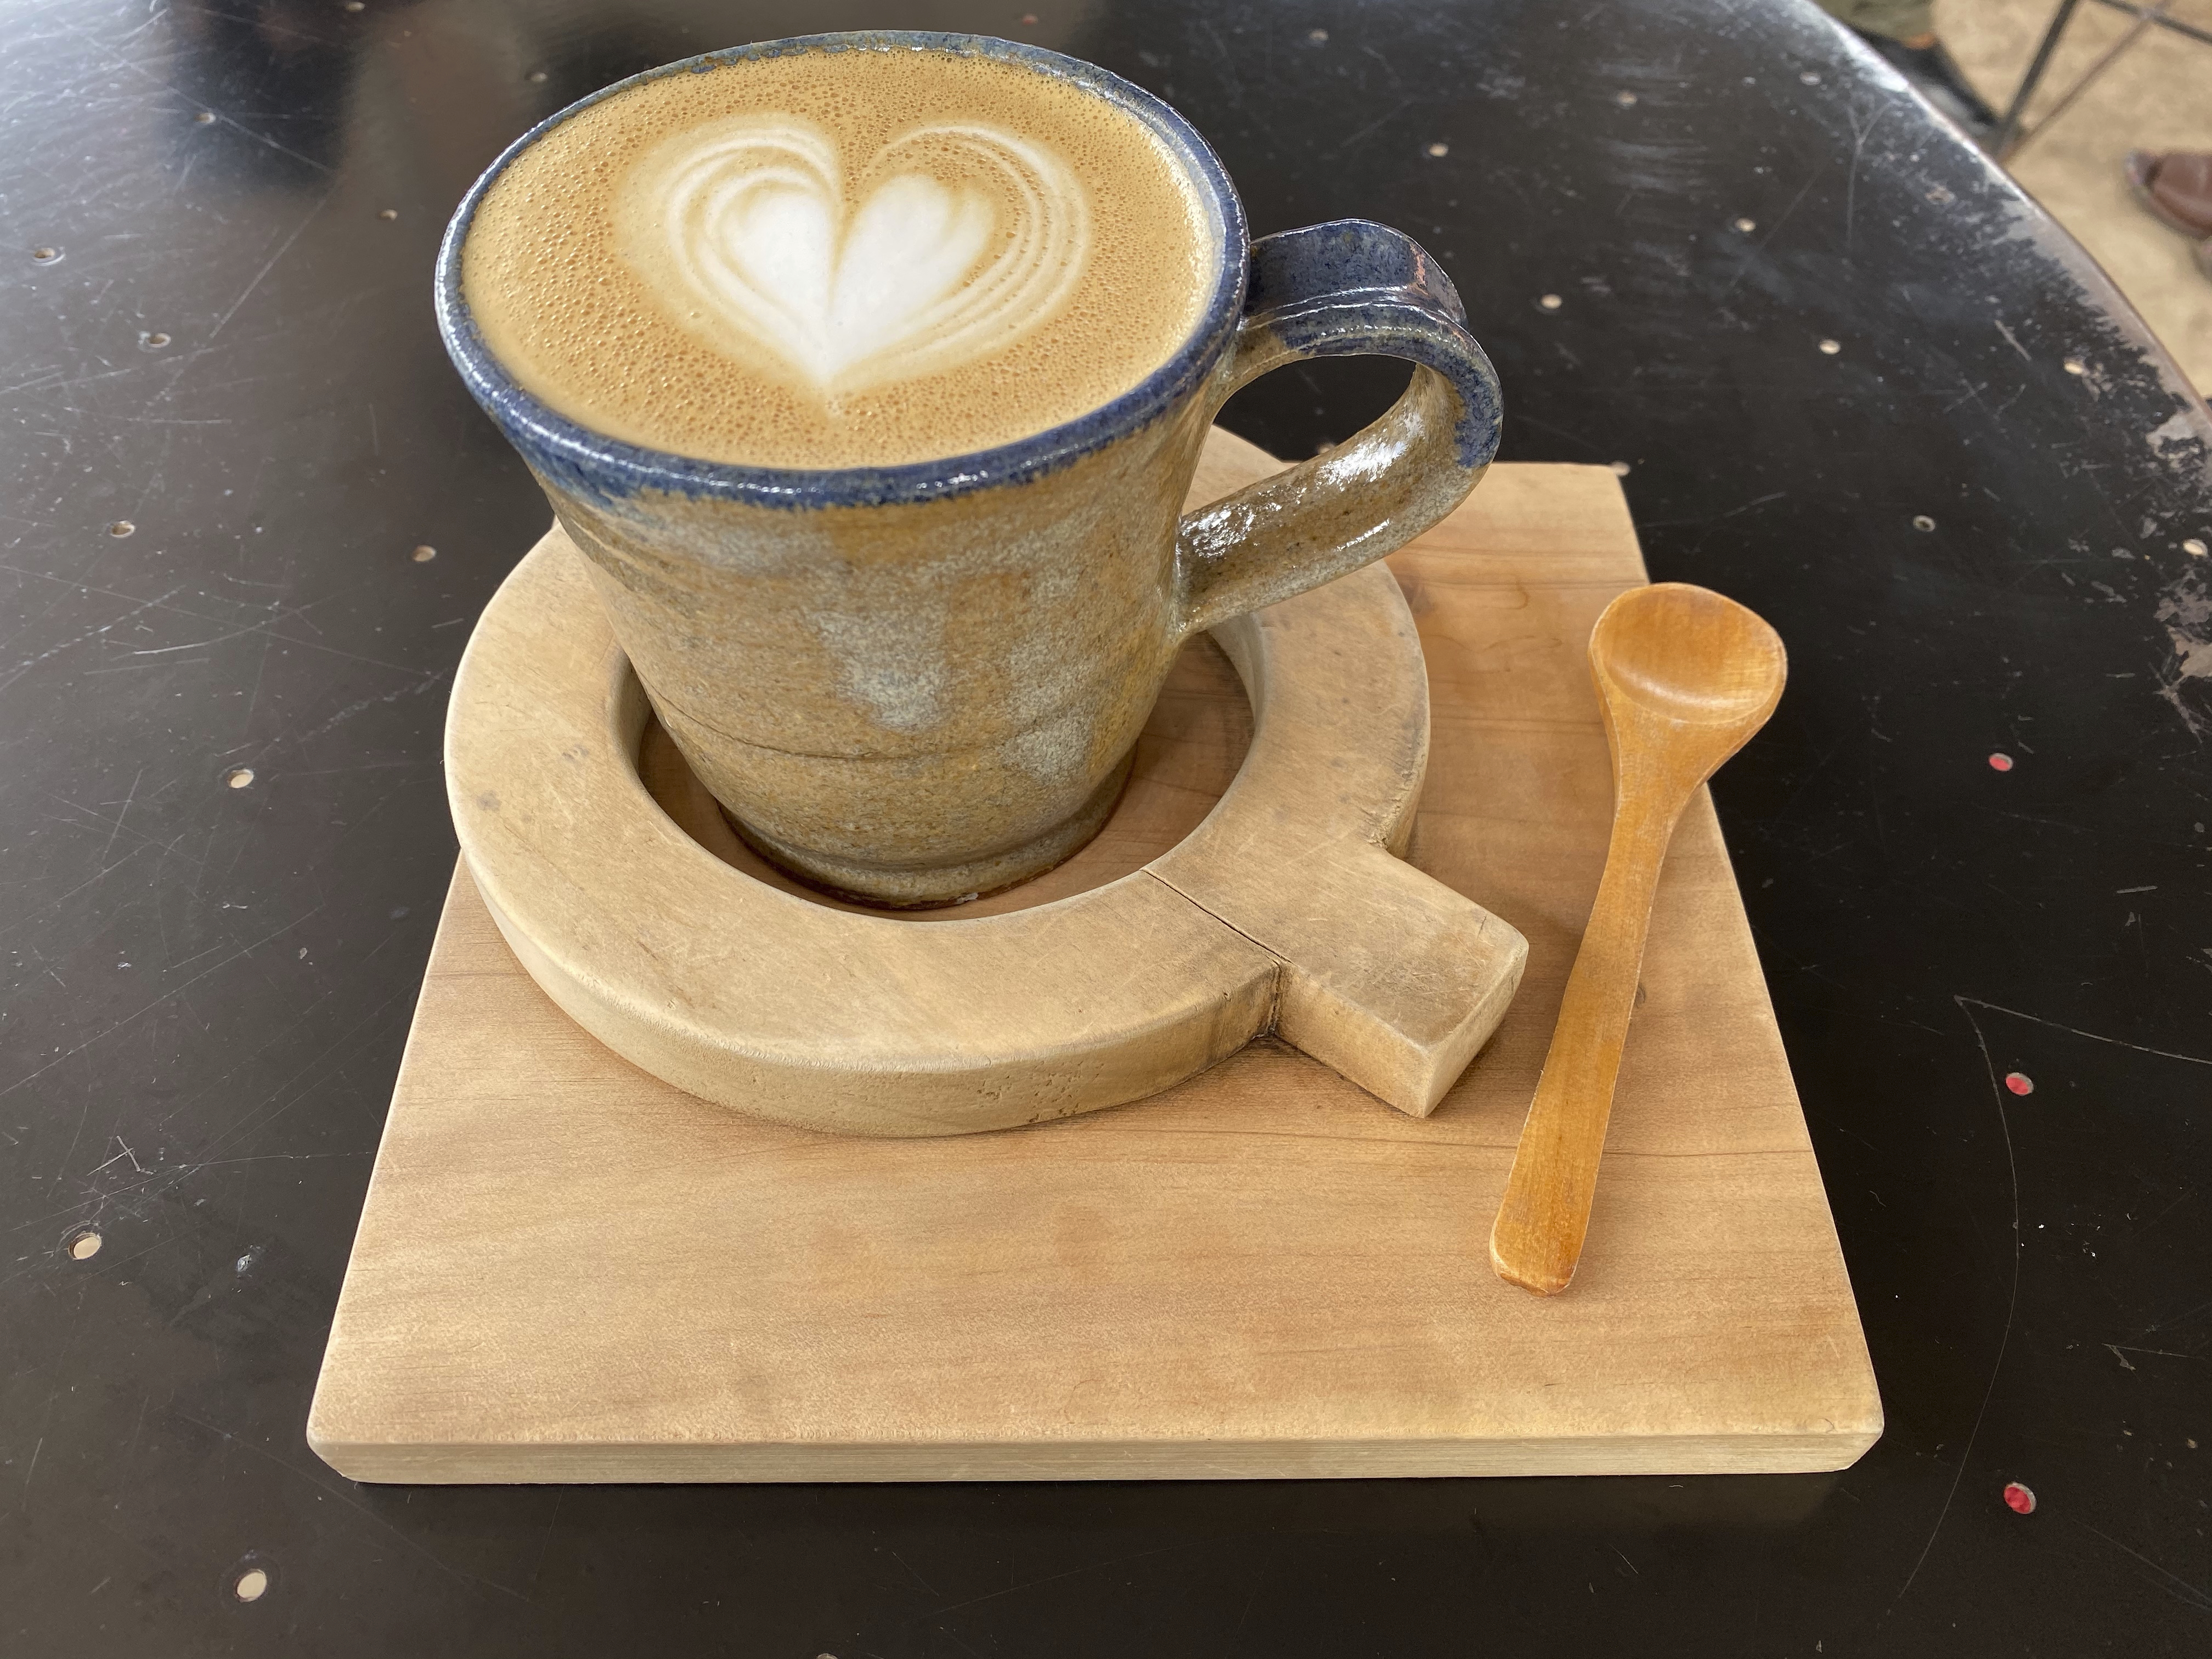 A photo of a cappuccino with beautiful coffee art at Question Coffee, a cute cafe in Kigali, Rwanda. The cup is nestled inside a wooden board shaped like the letter Q. Photo Courtesy of FoodWaterShoes